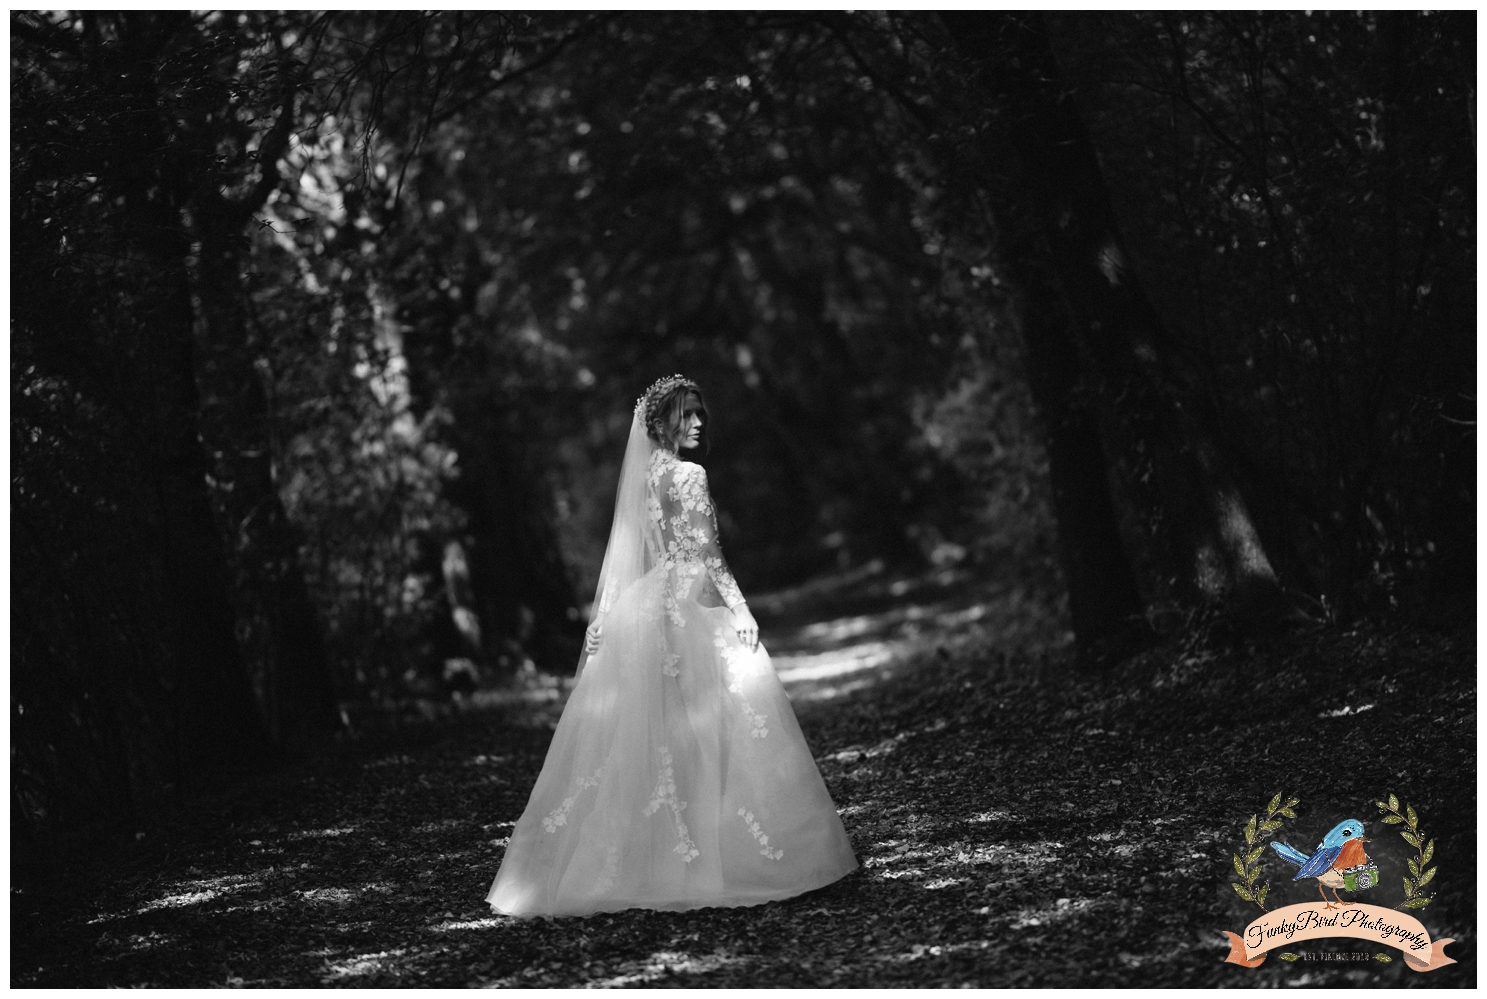 Tuscany Wedding Photographer  , Wedding in Tuscany , Wedding in Florence , Bruidsfotograaf , Trouwen in Toscane , Wedding Photographer in Tuscany , Bryllup Fotograf , Bryllup i Toscana , Bryllup Italia , Milos Dokmanovic , FunkyBird Photography